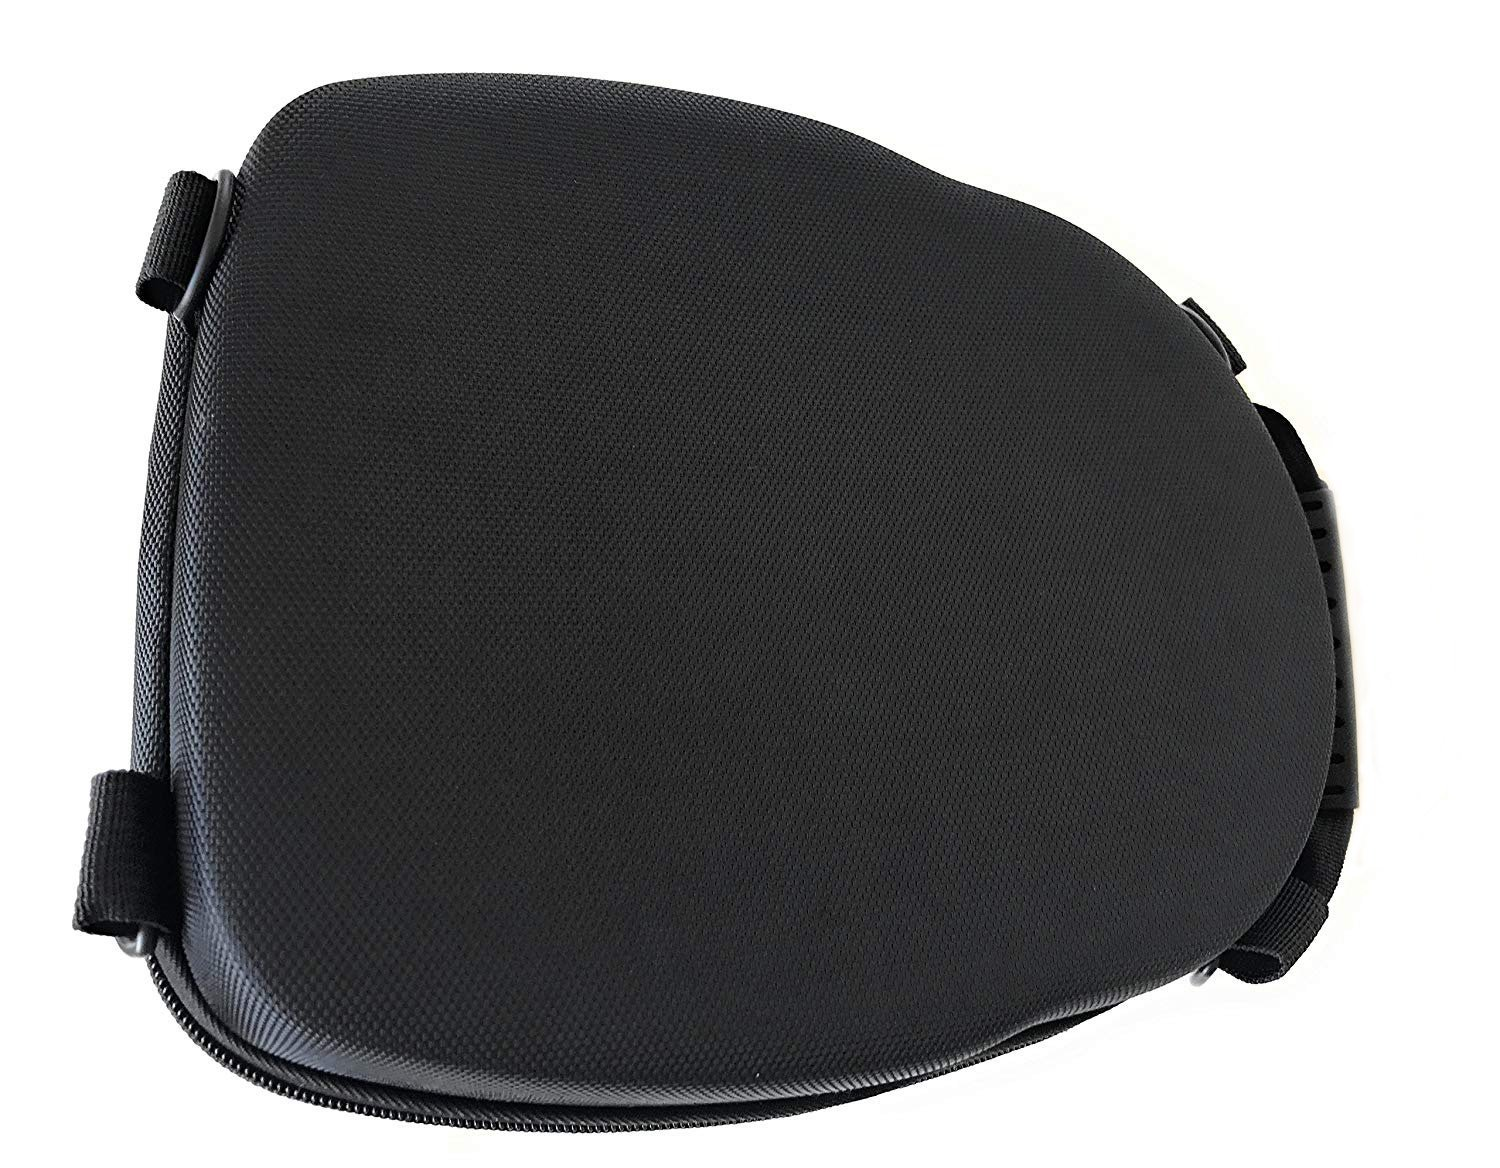 Durable Snapback Hat Carrier Lightweight Travel Hat Case with Capacious Design Version 2 HIDE SimpleChoice Hat Carrier Case Portable Case for Caps Baseball Caps Storage Case